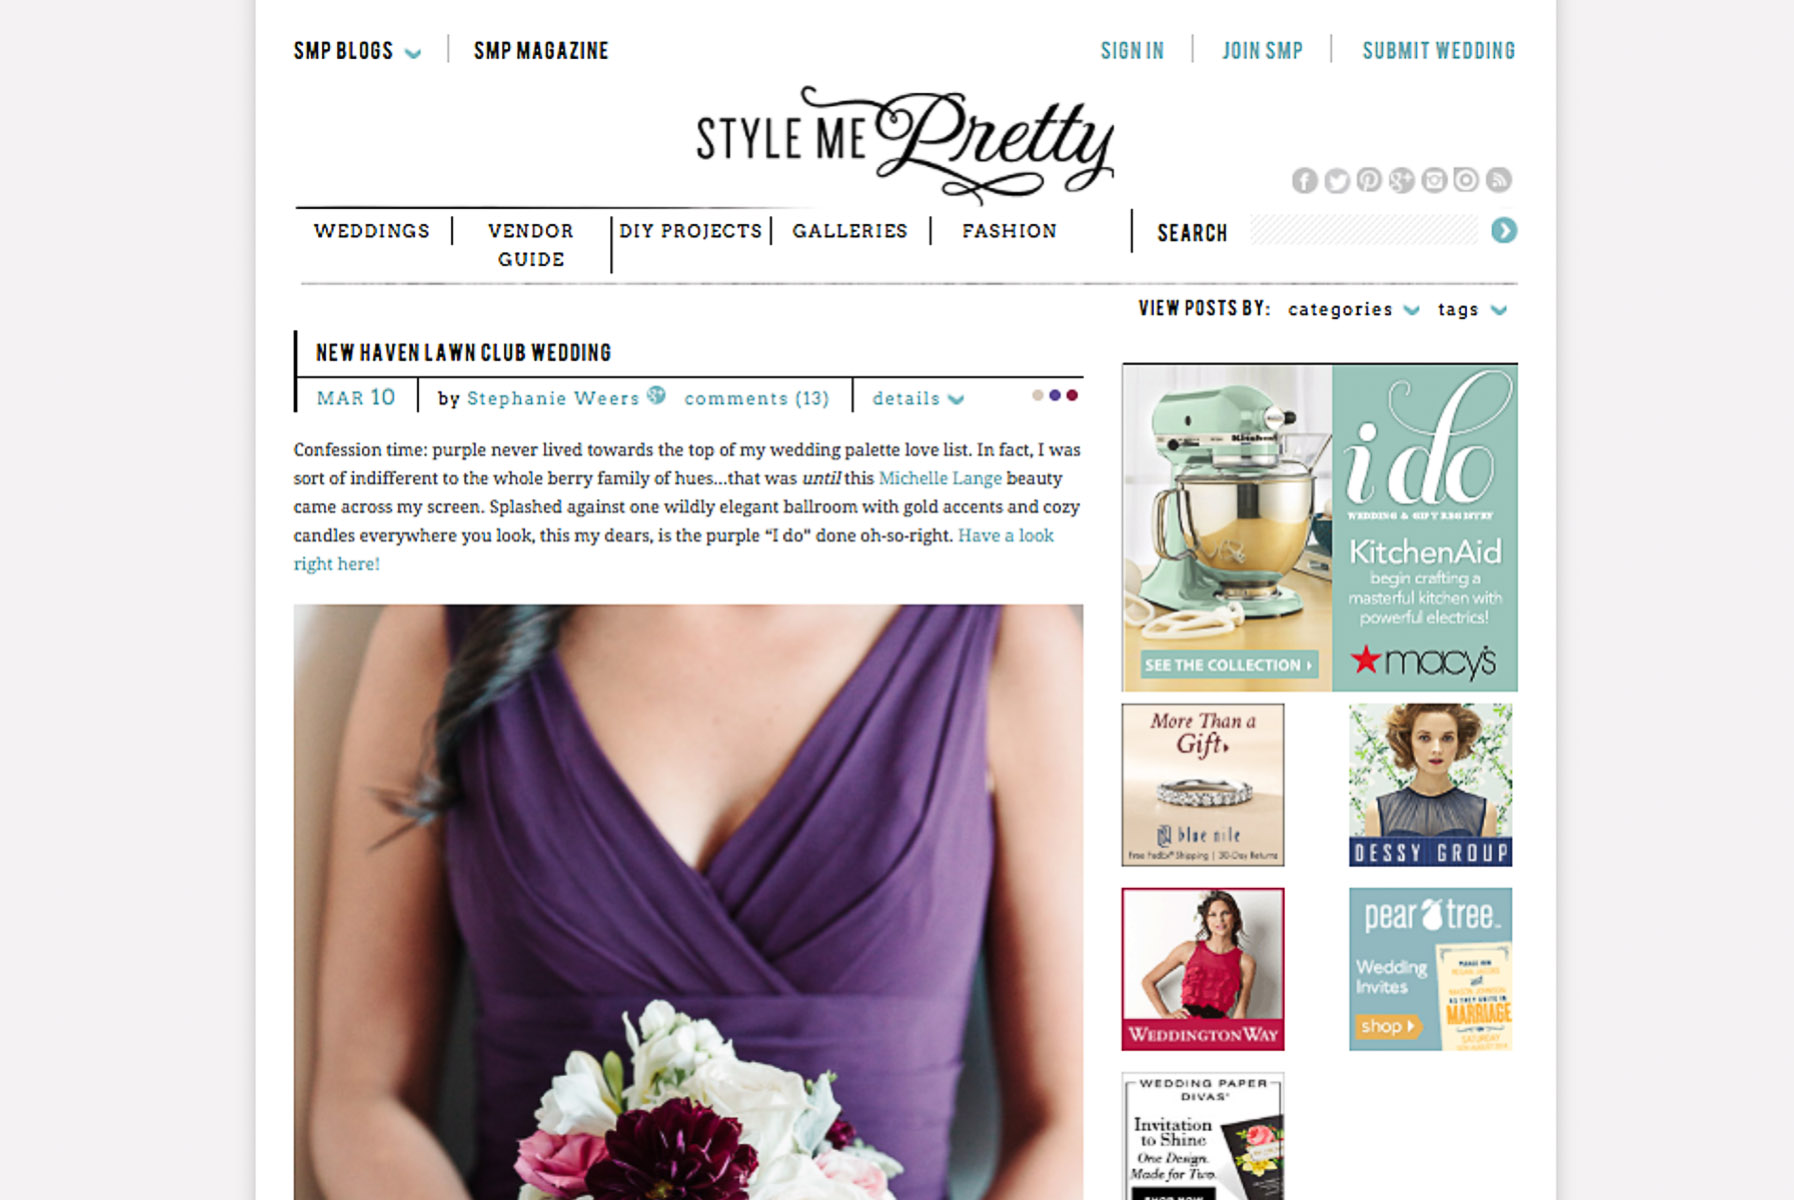 Published in Style Me Pretty New Haven Lawn Club